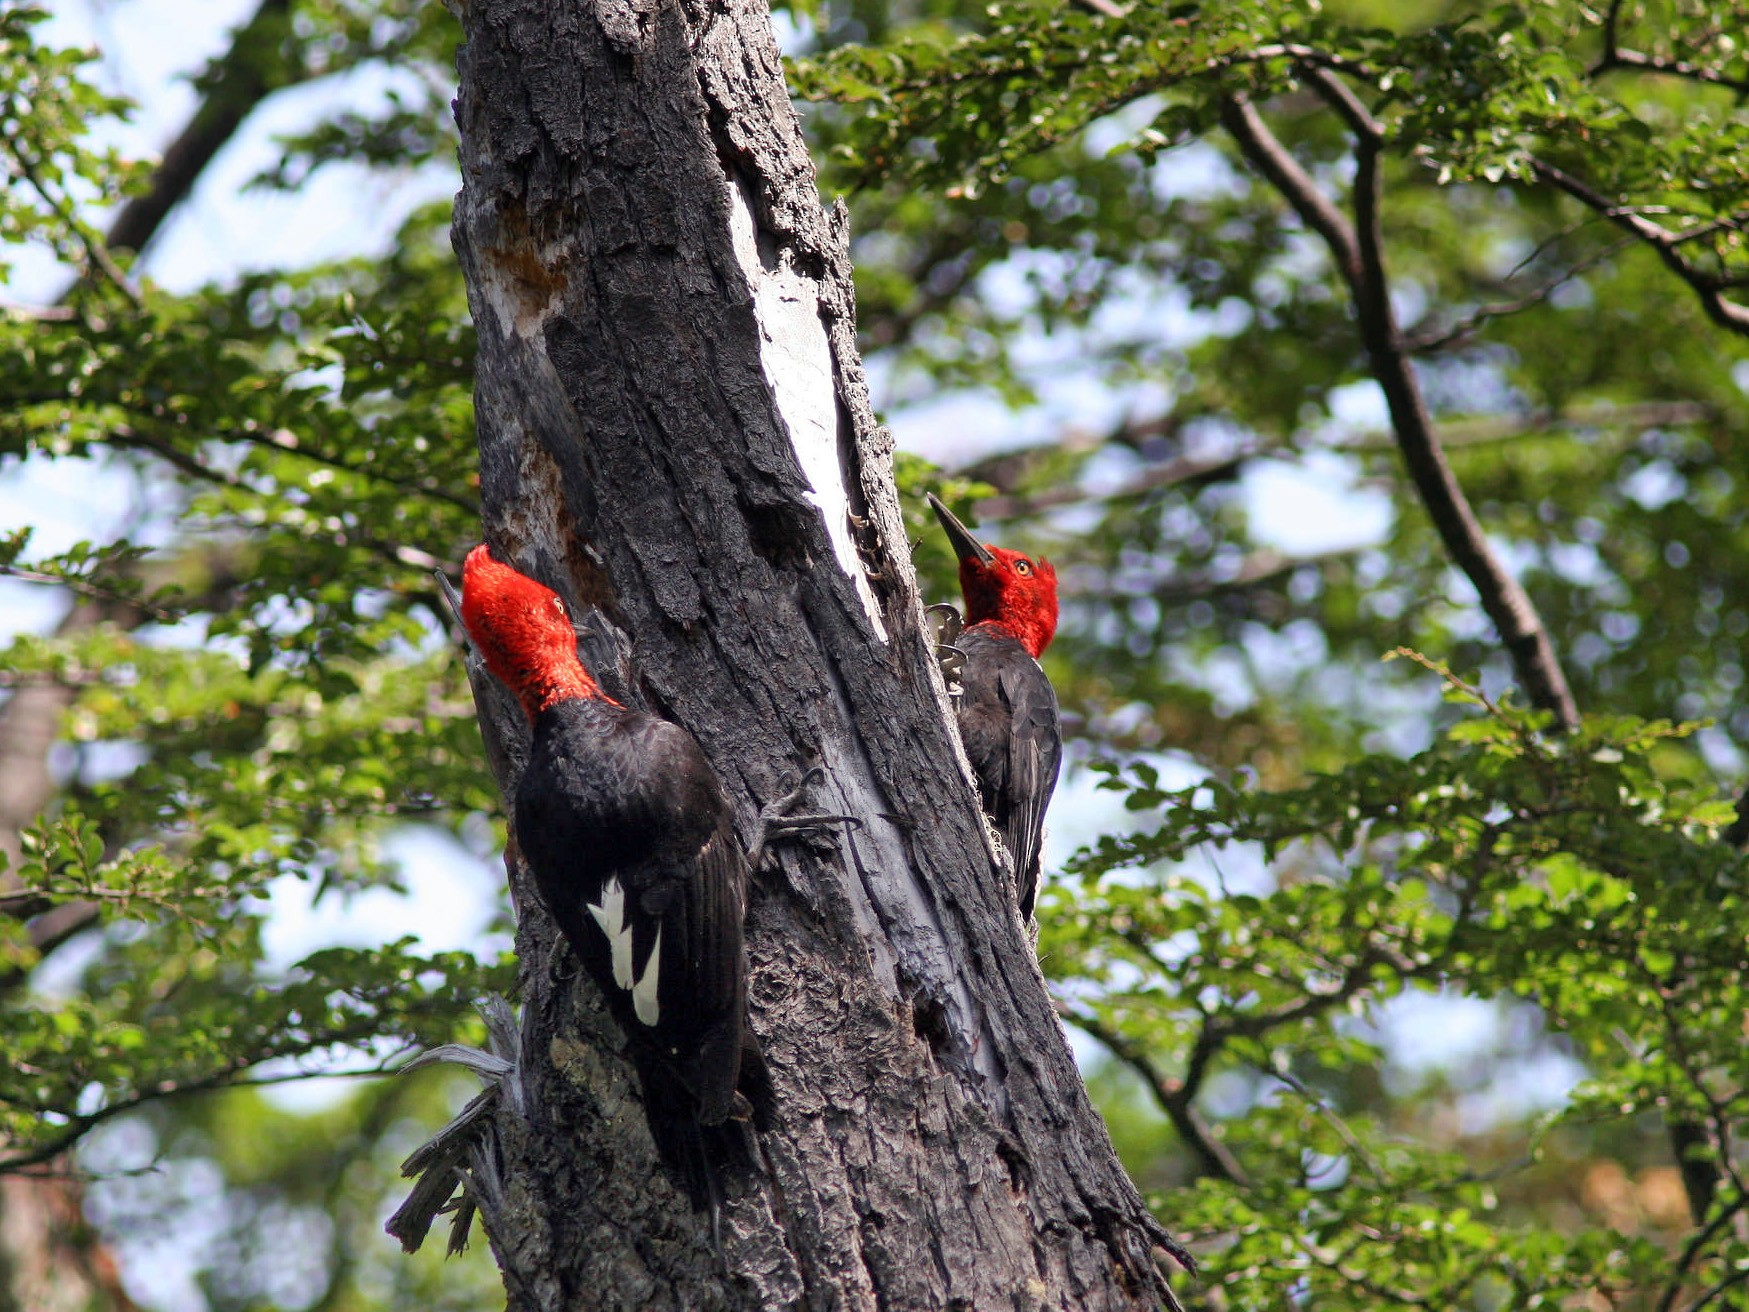 Magellanic Woodpecker - Markus Deutsch